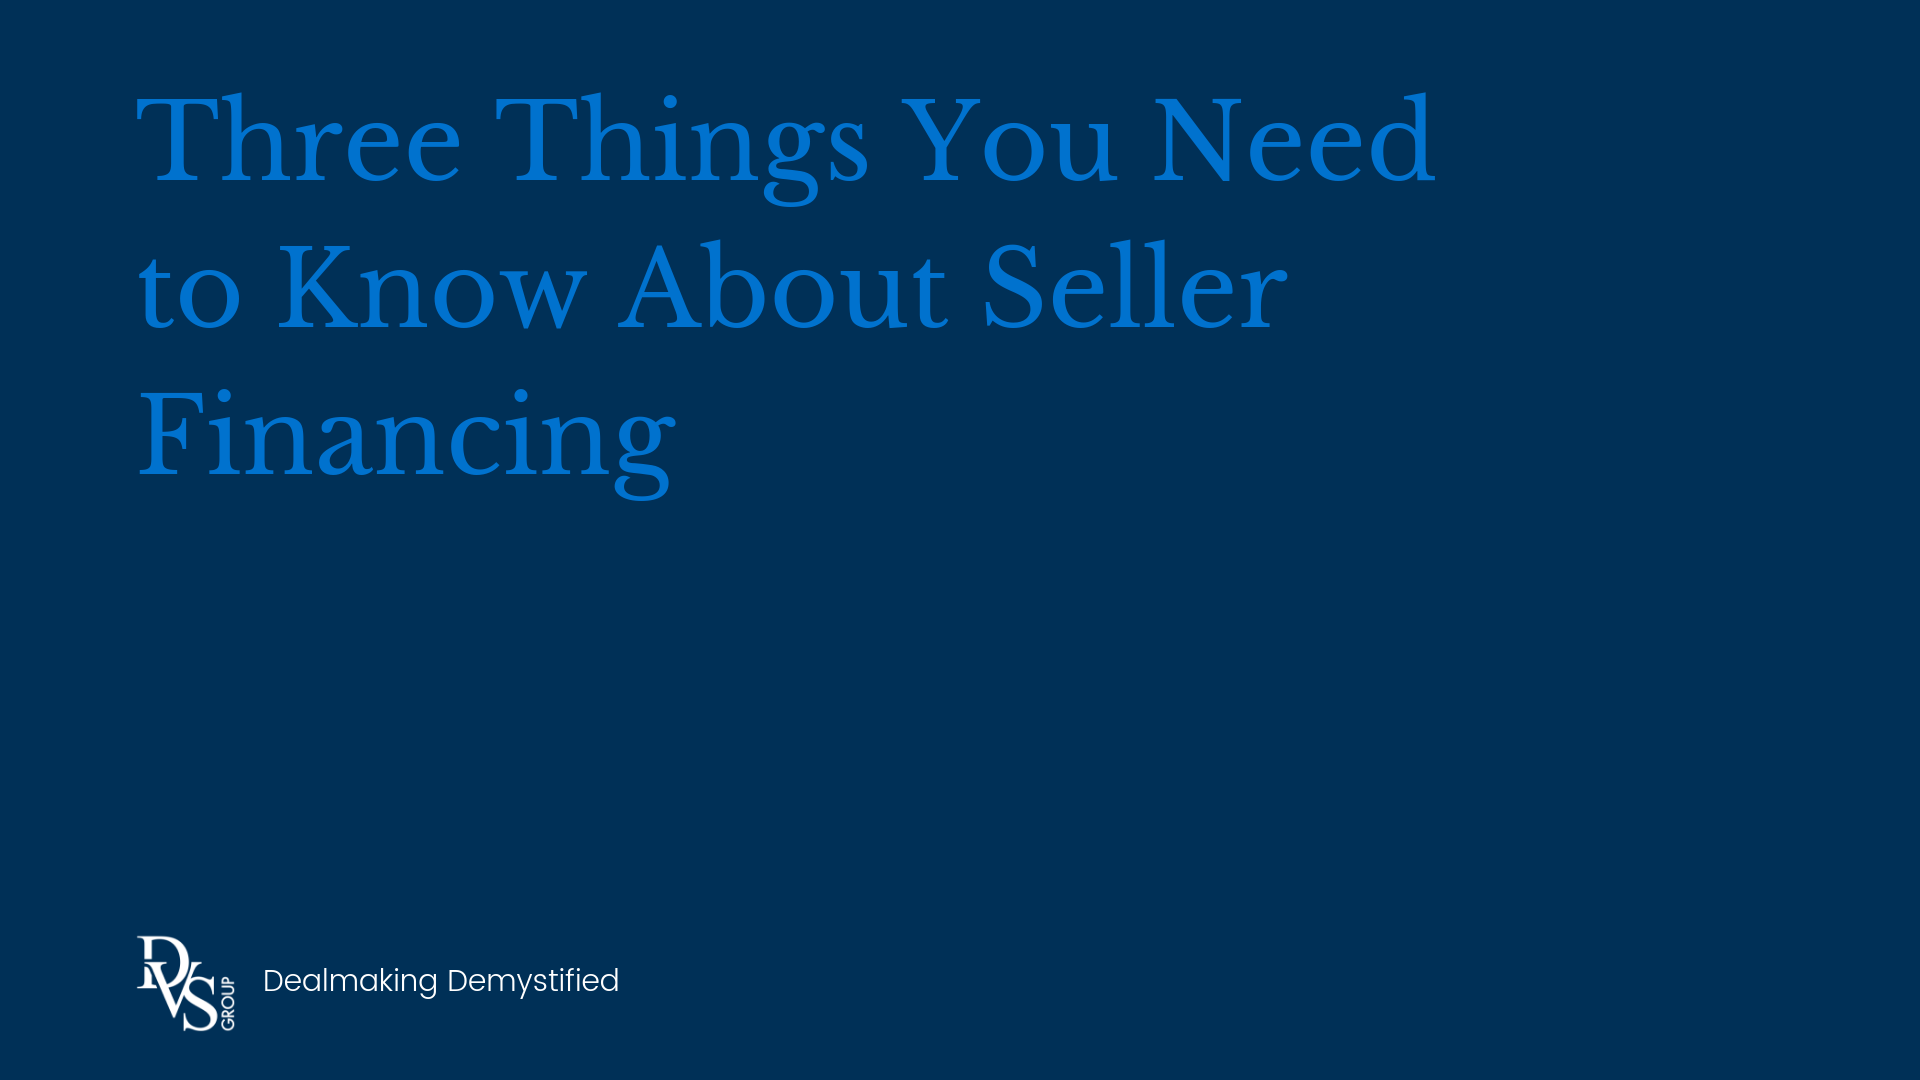 Three Things You Need to Know About Seller Financing